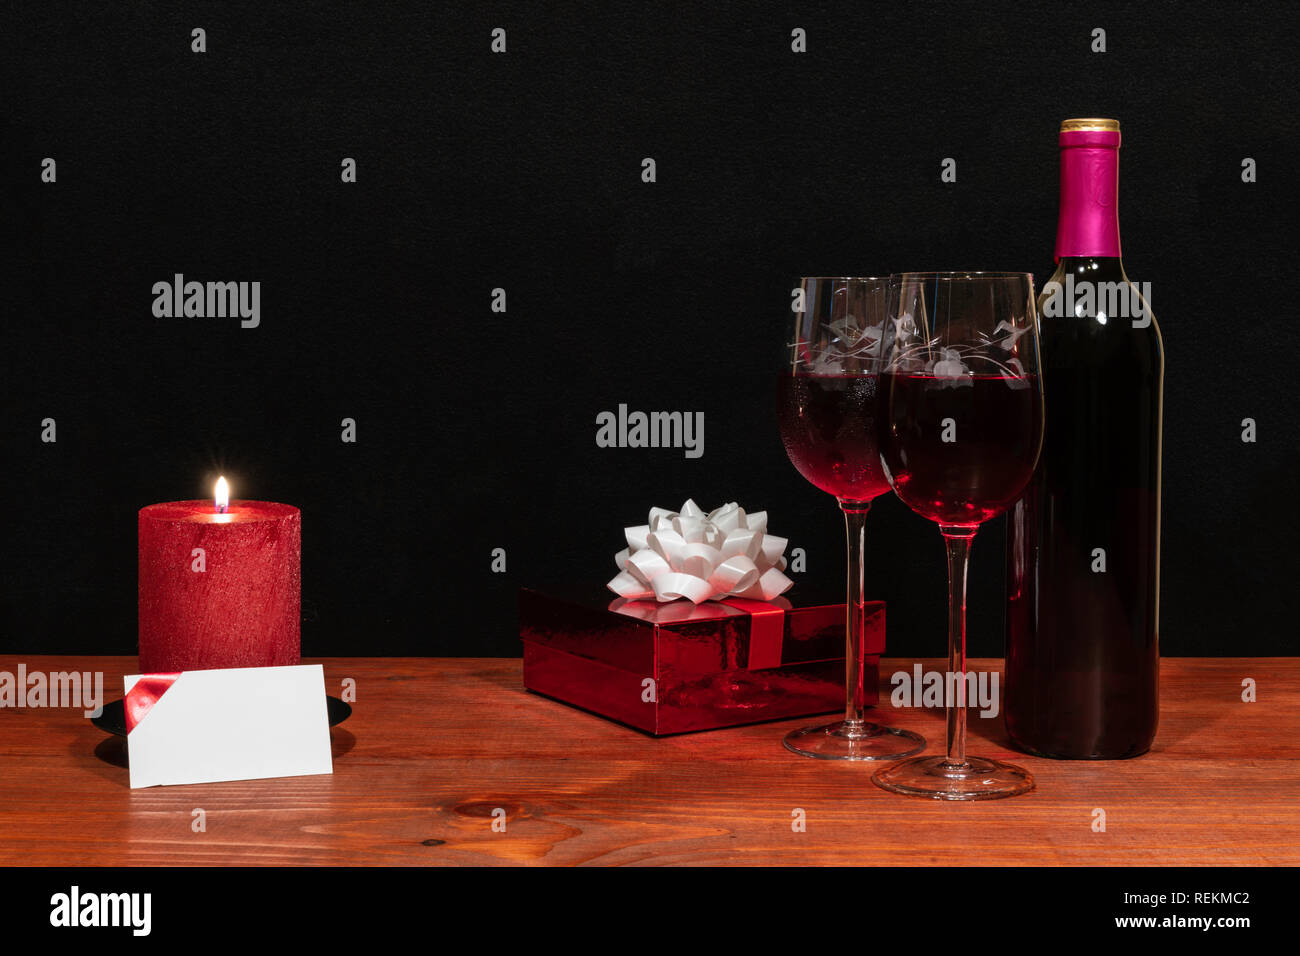 Beautiful etched wine glasses and bottle of red wine, red candle, wrapped present with bow on wooden table with name tag on dark background. Valentine Stock Photo